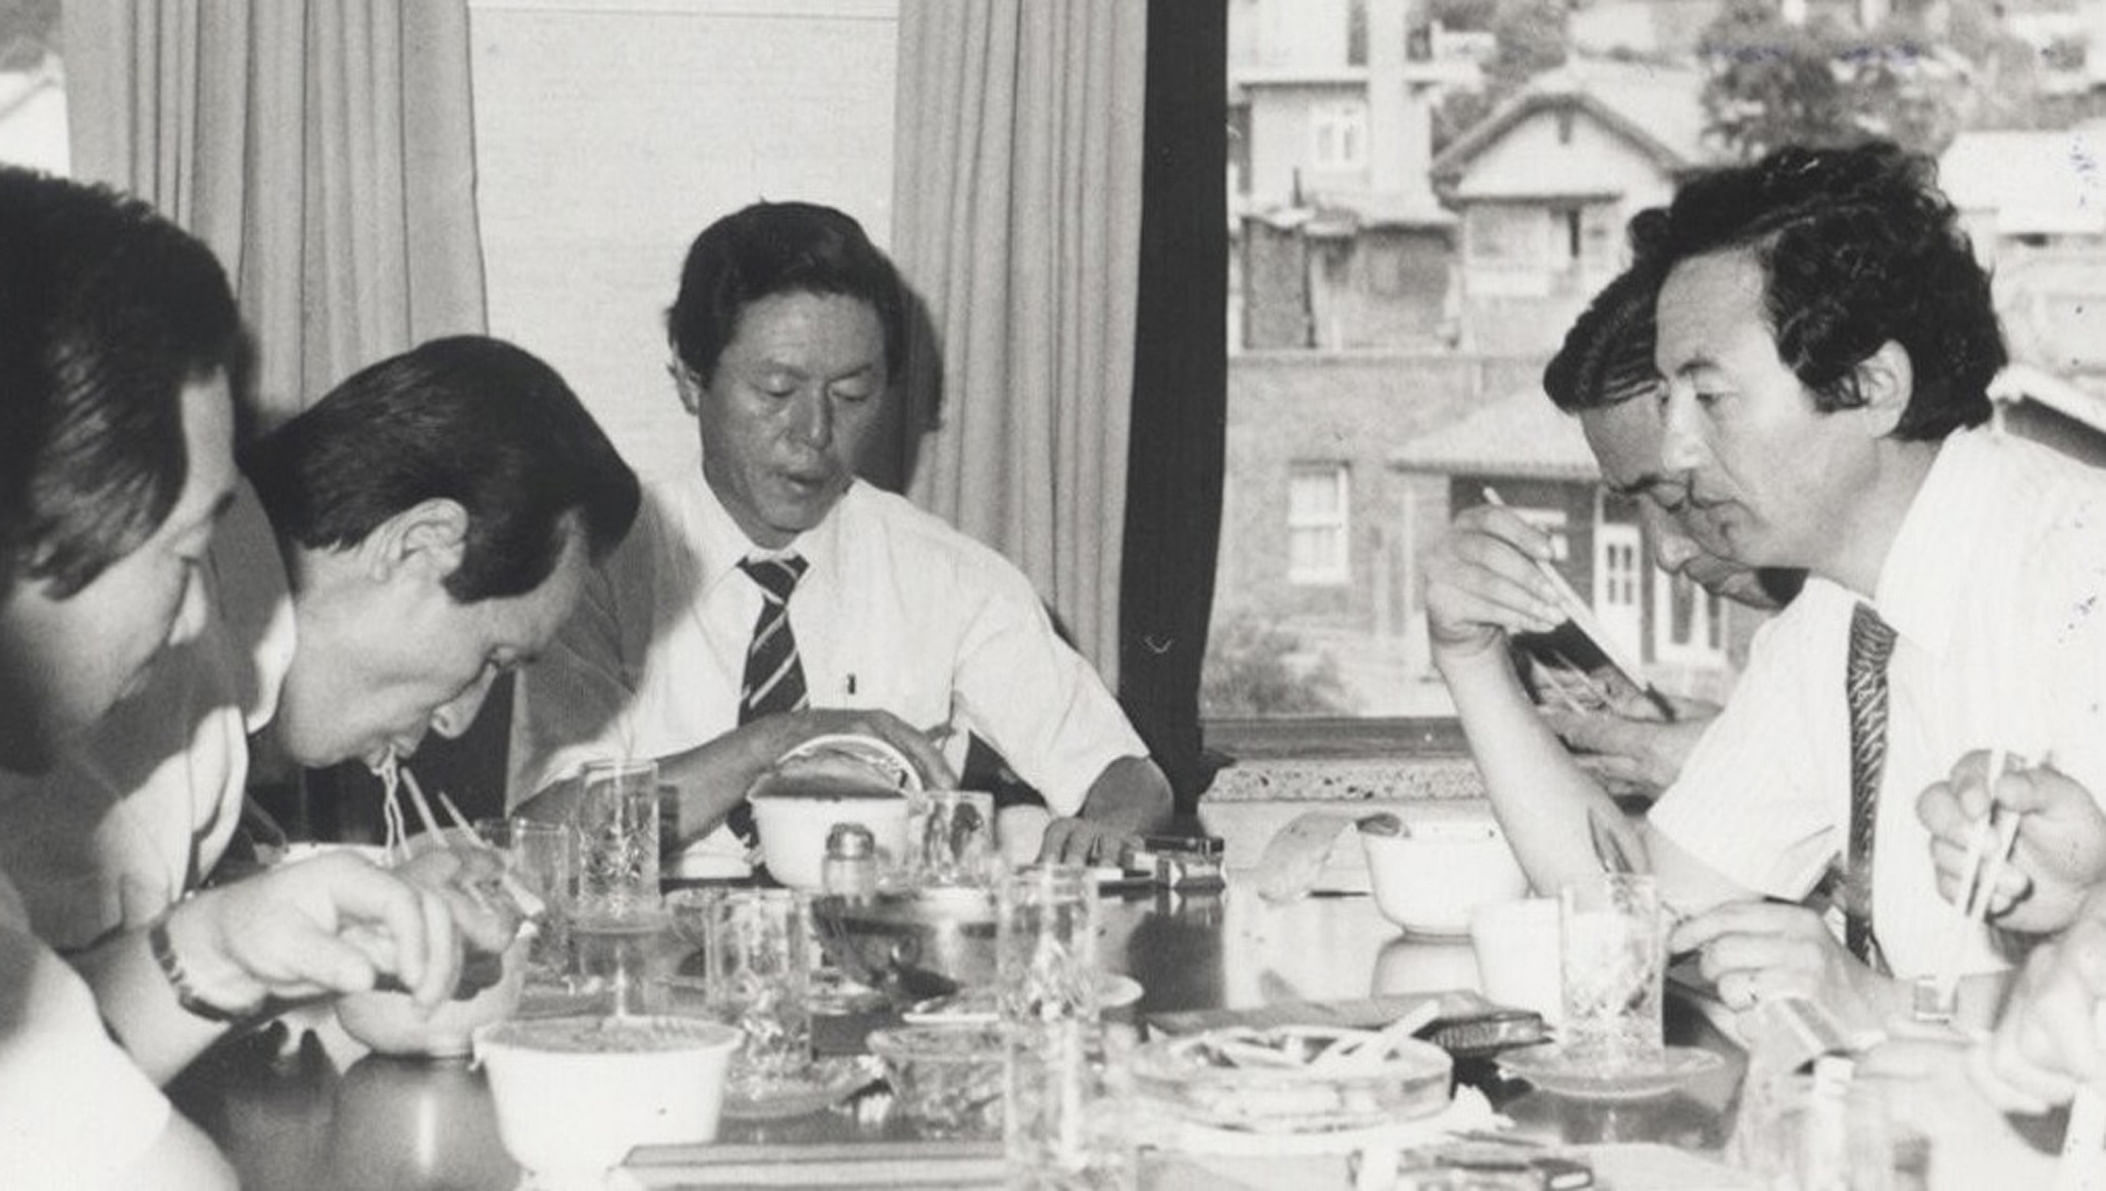 Choon-ho (center) trying out his instant noodles.